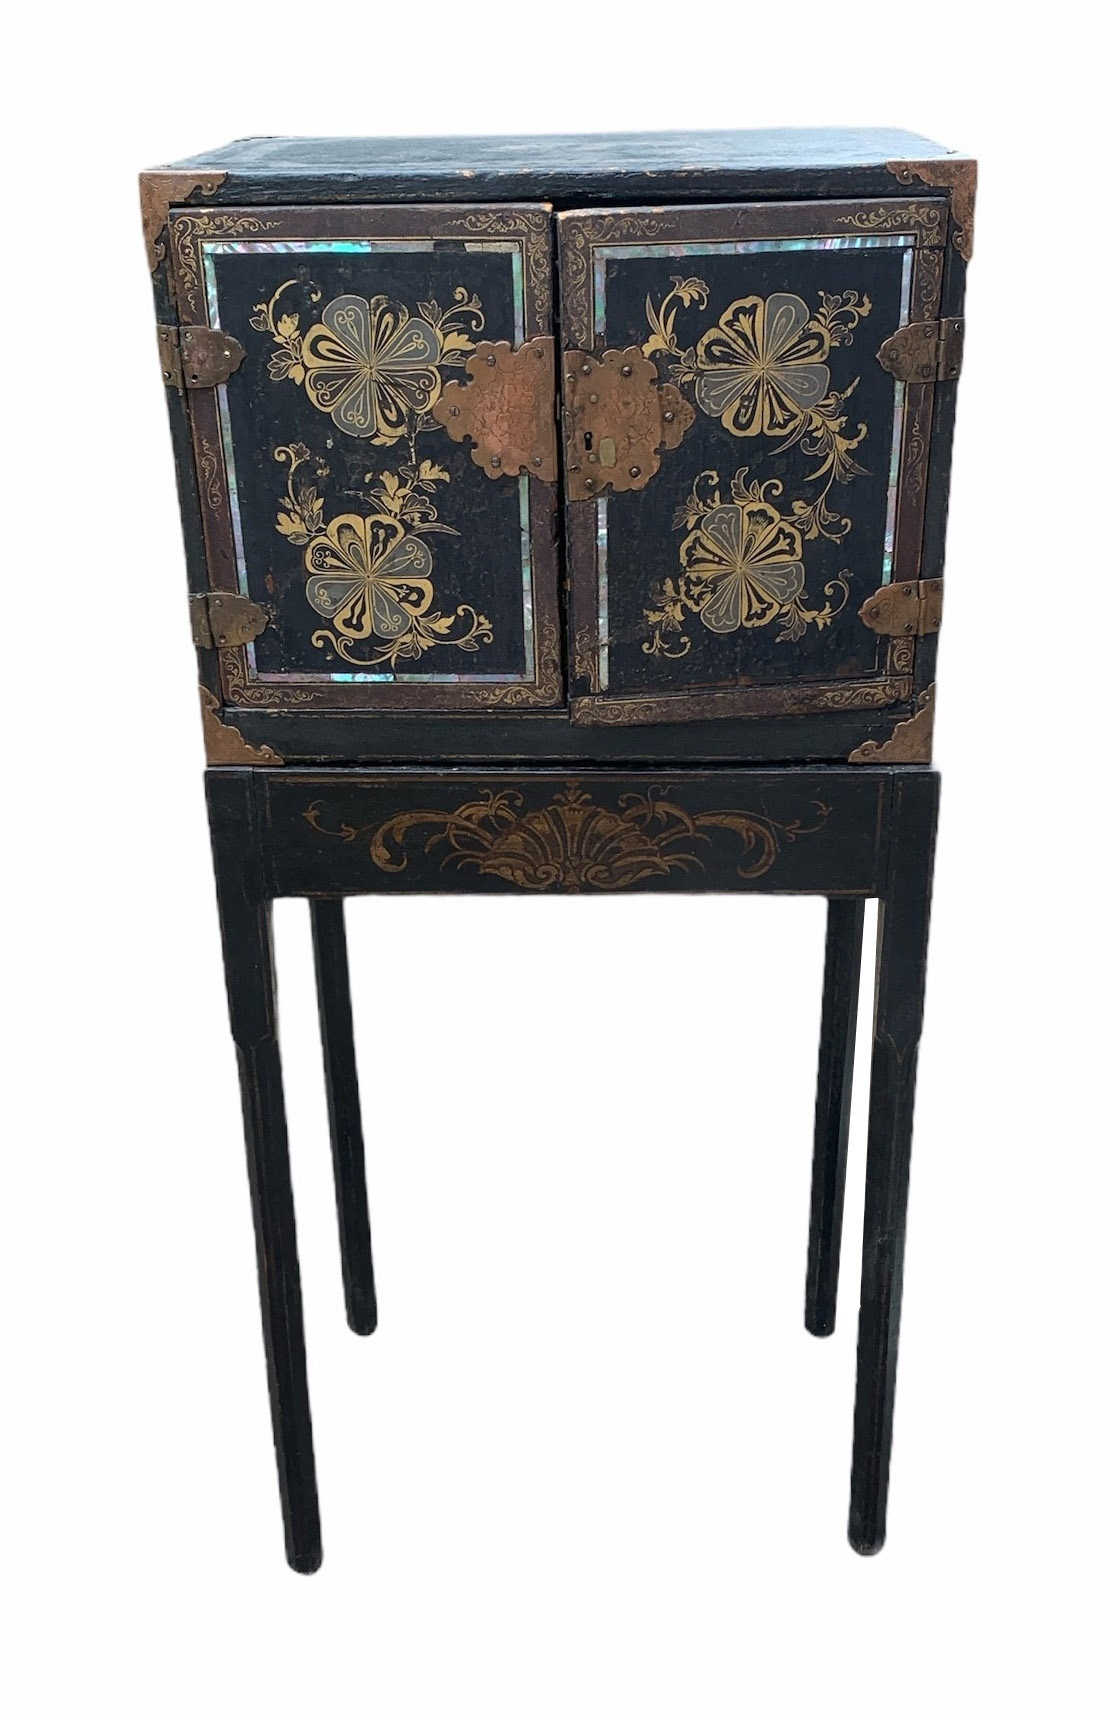 A PORTABLE INLAID EXPORT LACQUER NANBAN CABINET ON STAND Momoyama period (1573-1615) late 16th/early